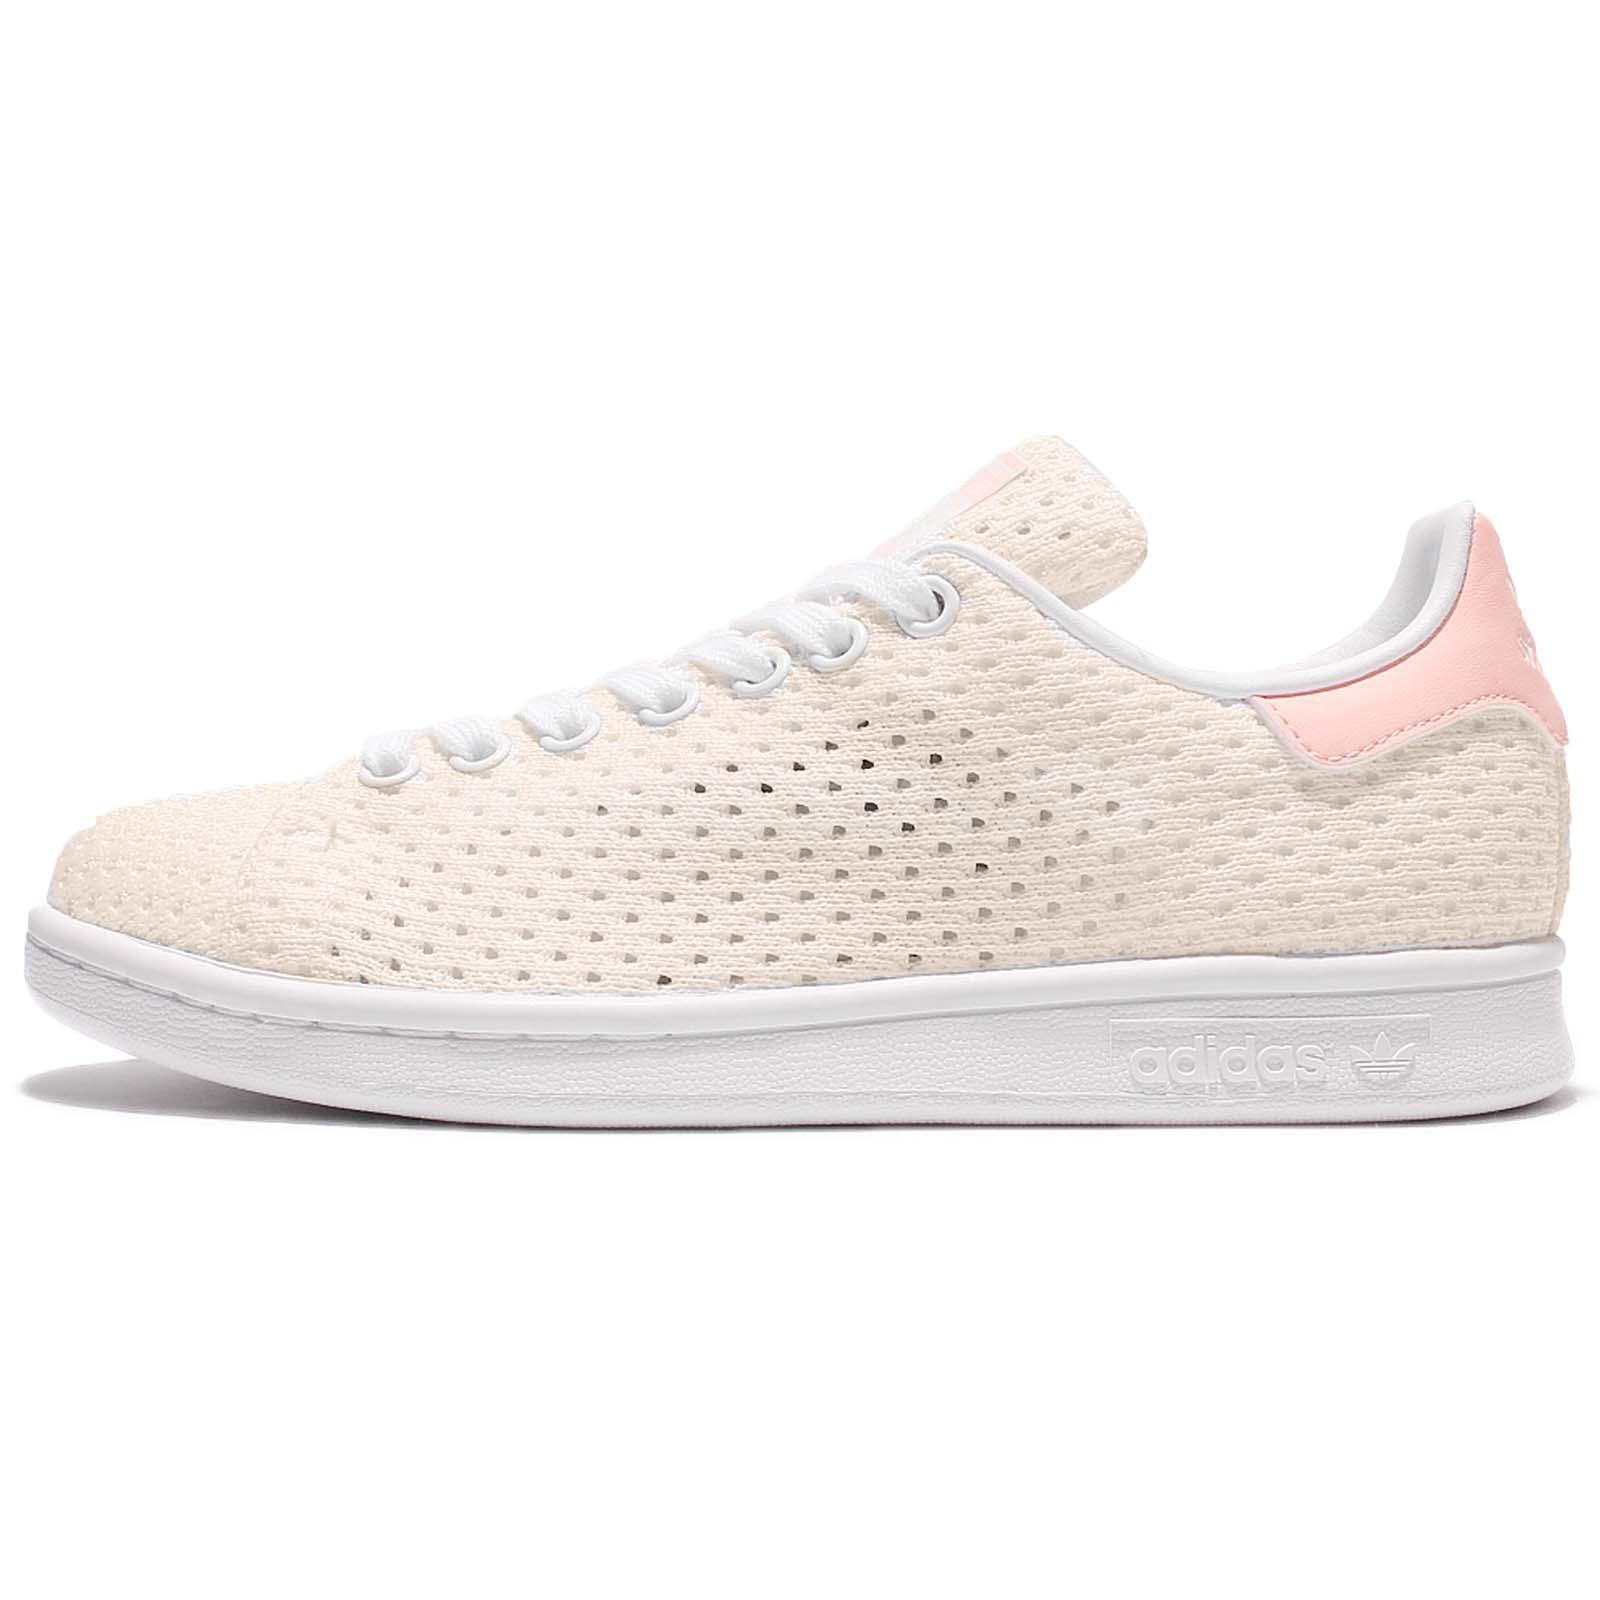 adidas Originals Stan Smith W Mesh White Pink Classic Women Casual Shoes  S82256